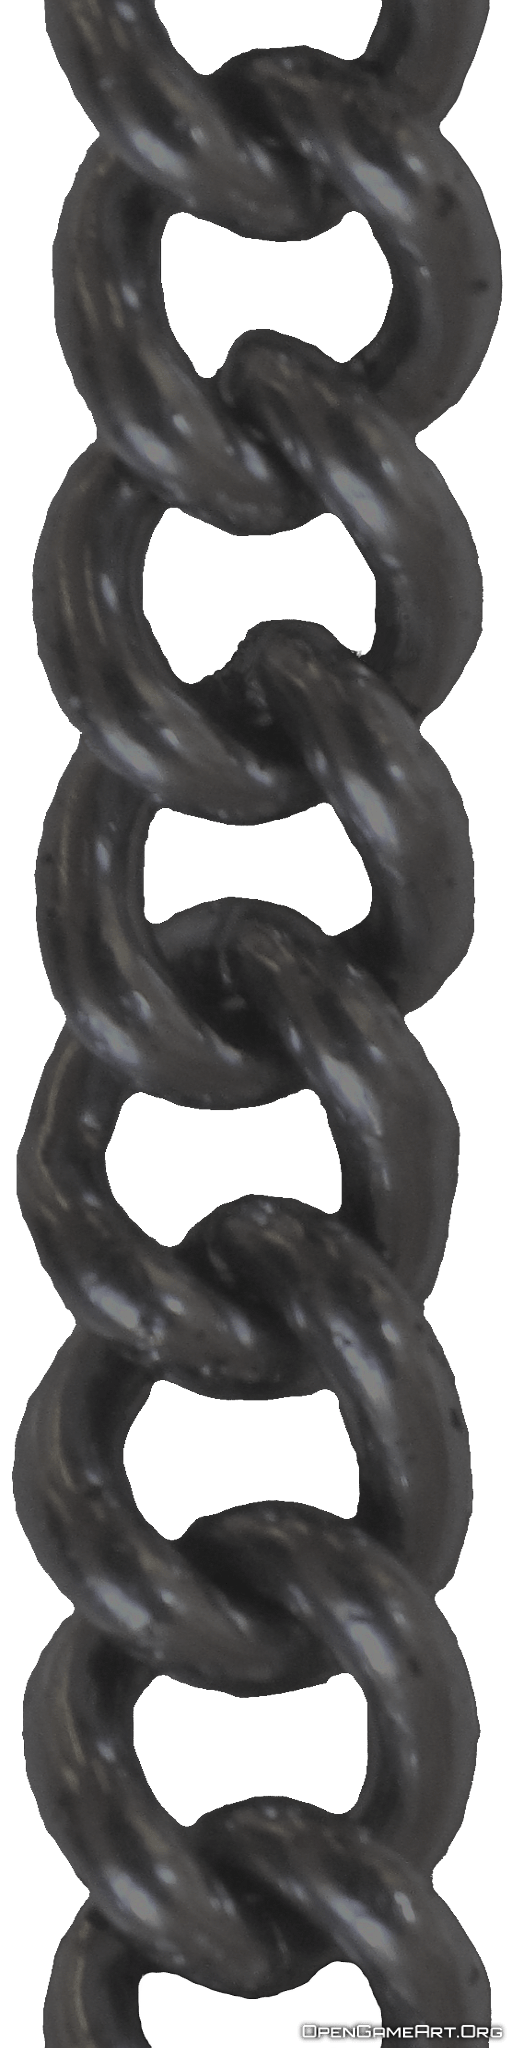 Black Chain Png Image PNG Image